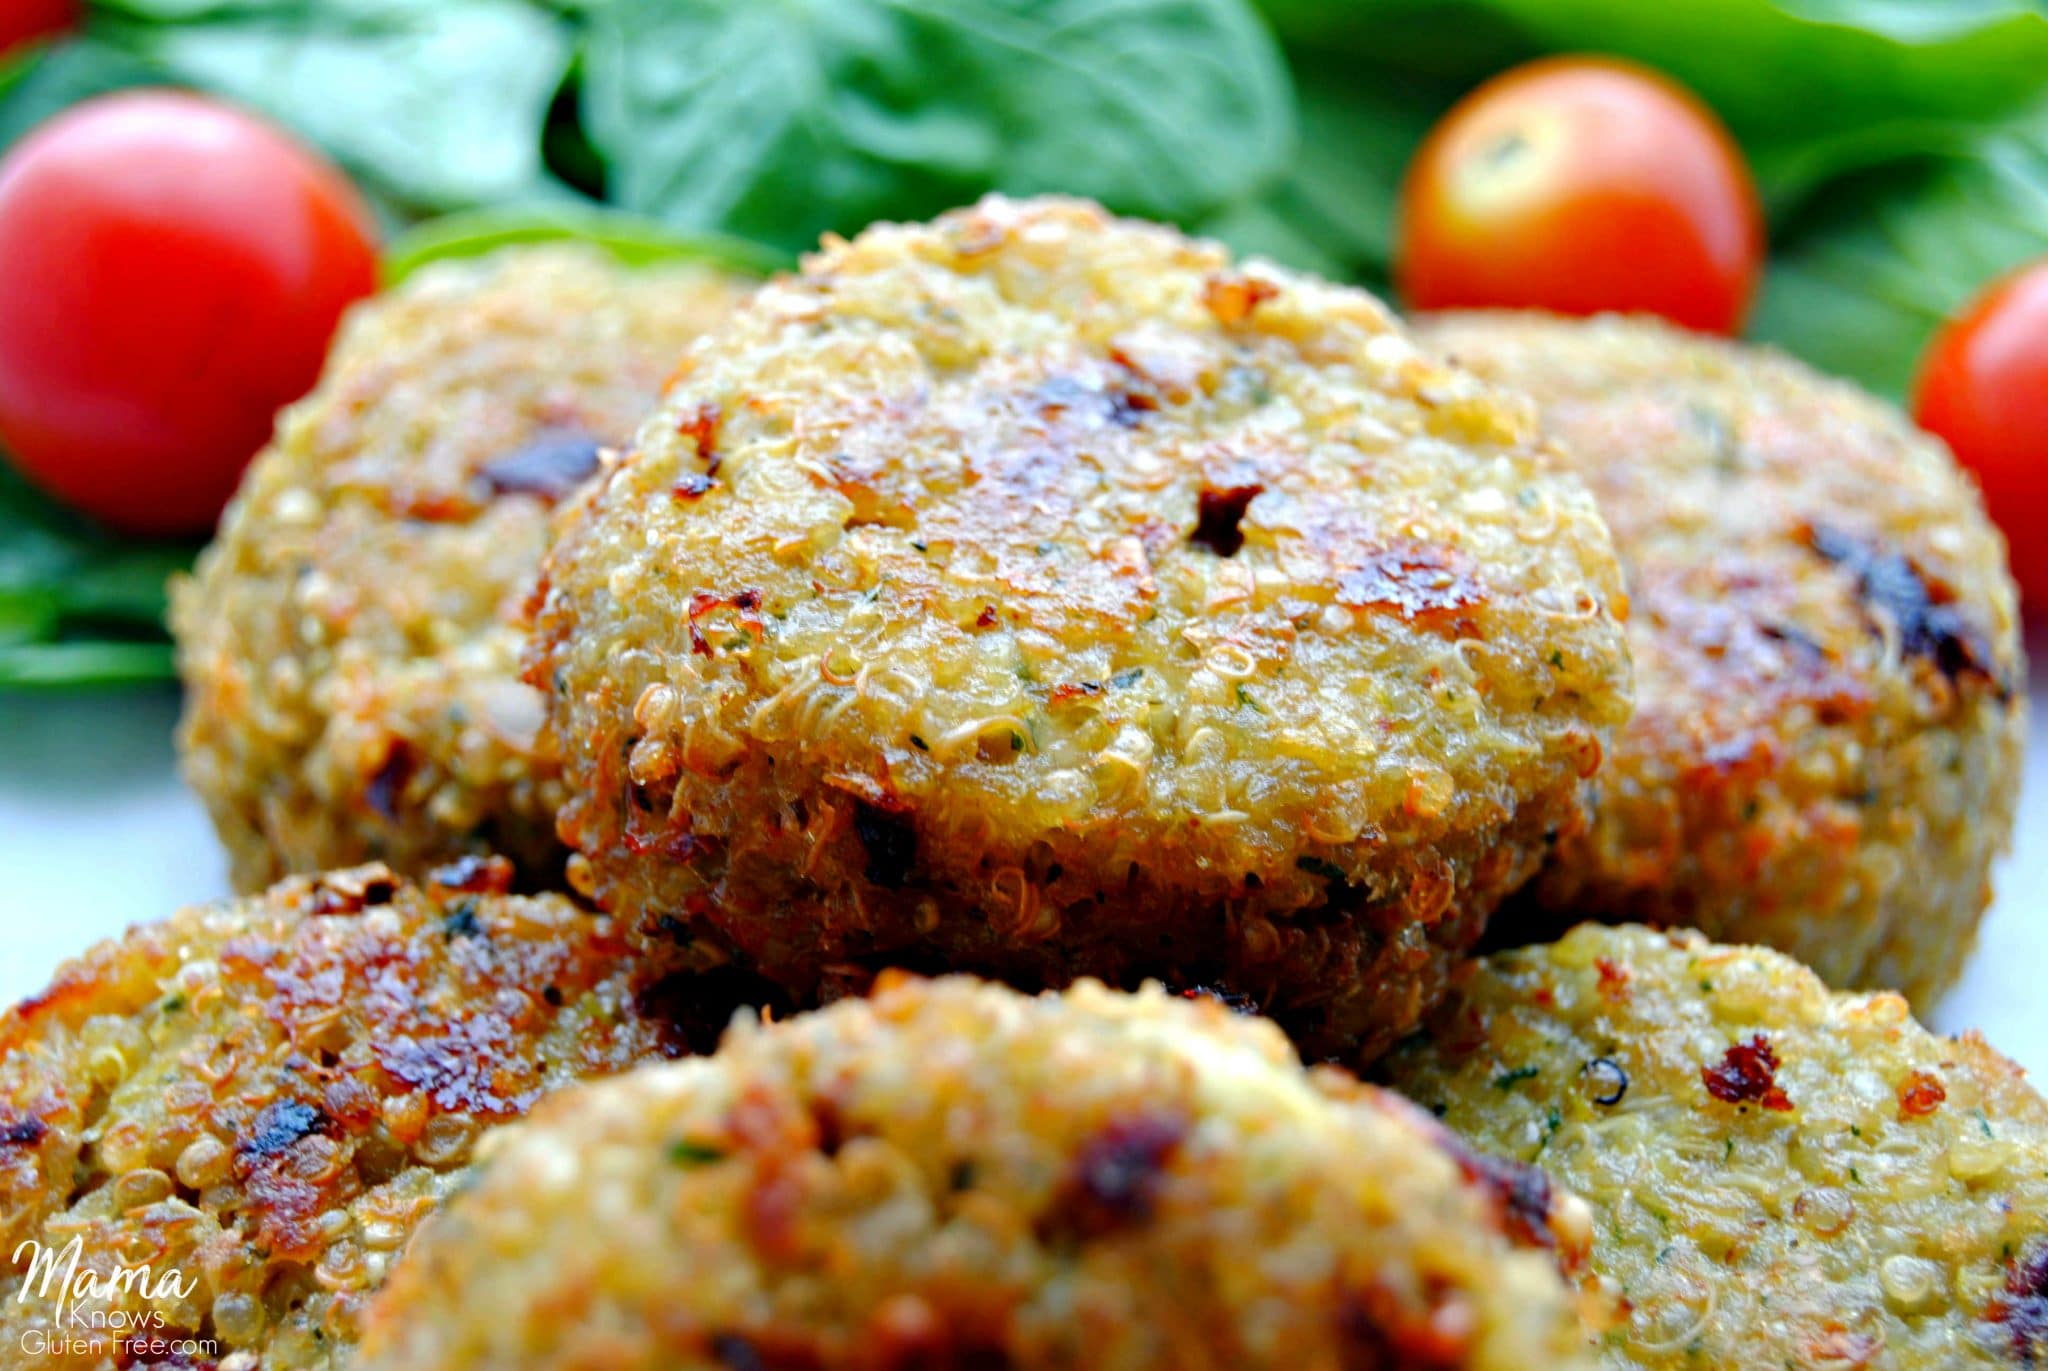 Pan Fried Quinoa Cakes